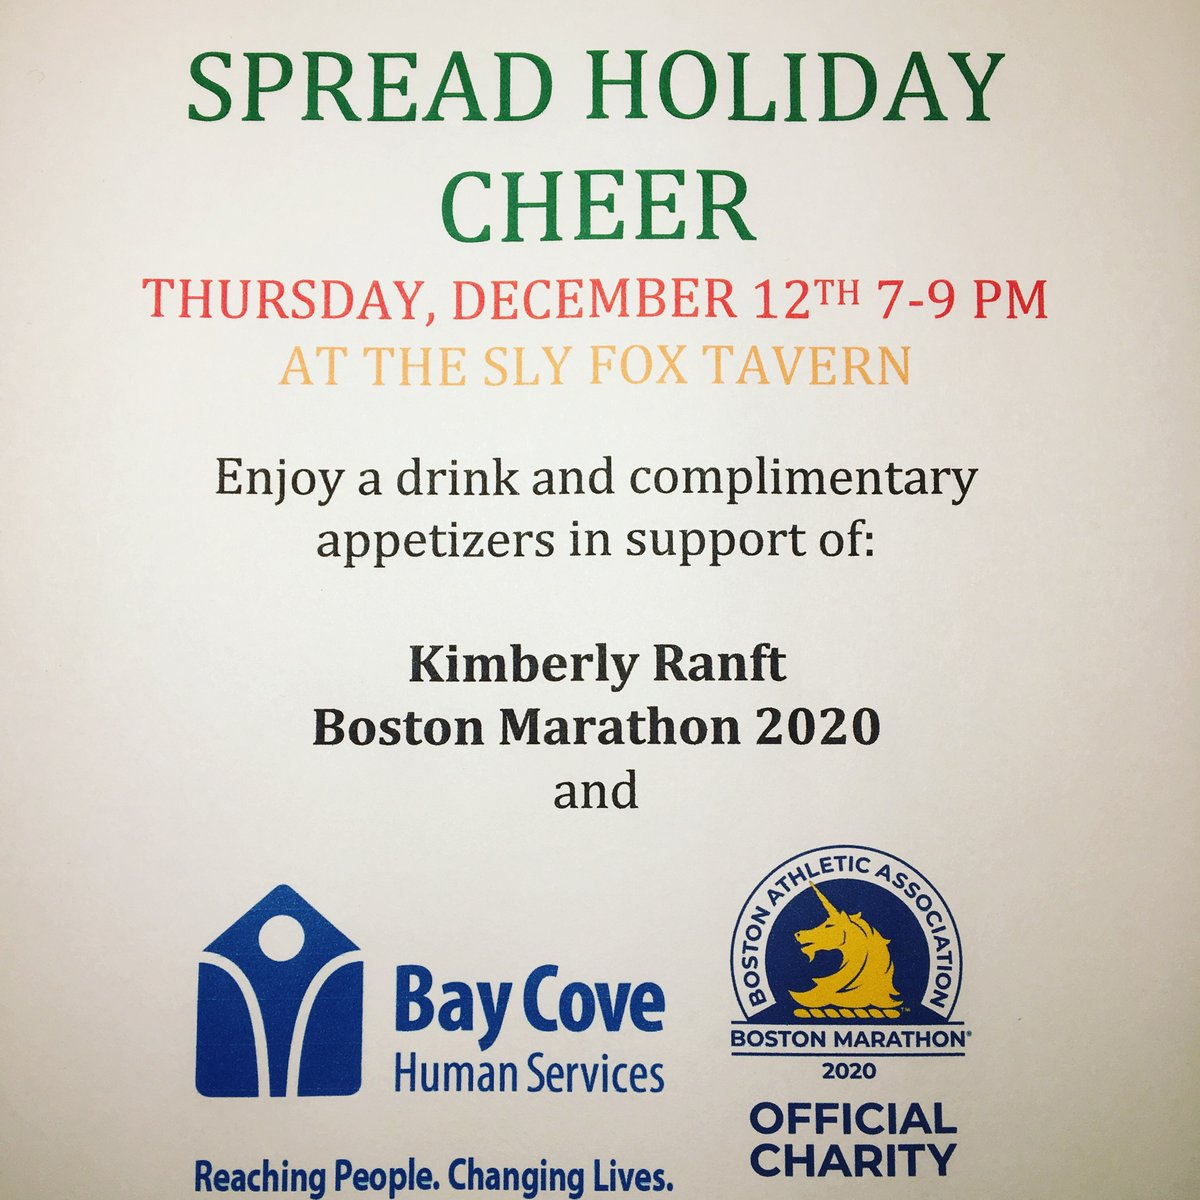 Looking to do something fun tonight, while supporting a great cause? Kim Ranft of #TeamBayCove2020 is hosting a fundraiser TONIGHT, benefiting her #BostonMarathon run for Bay Cove. If you're in the Quincy area, come out &(holiday) cheer on Kim's efforts on behalf of our agency! <br>http://pic.twitter.com/Q7Wrr8xGPB